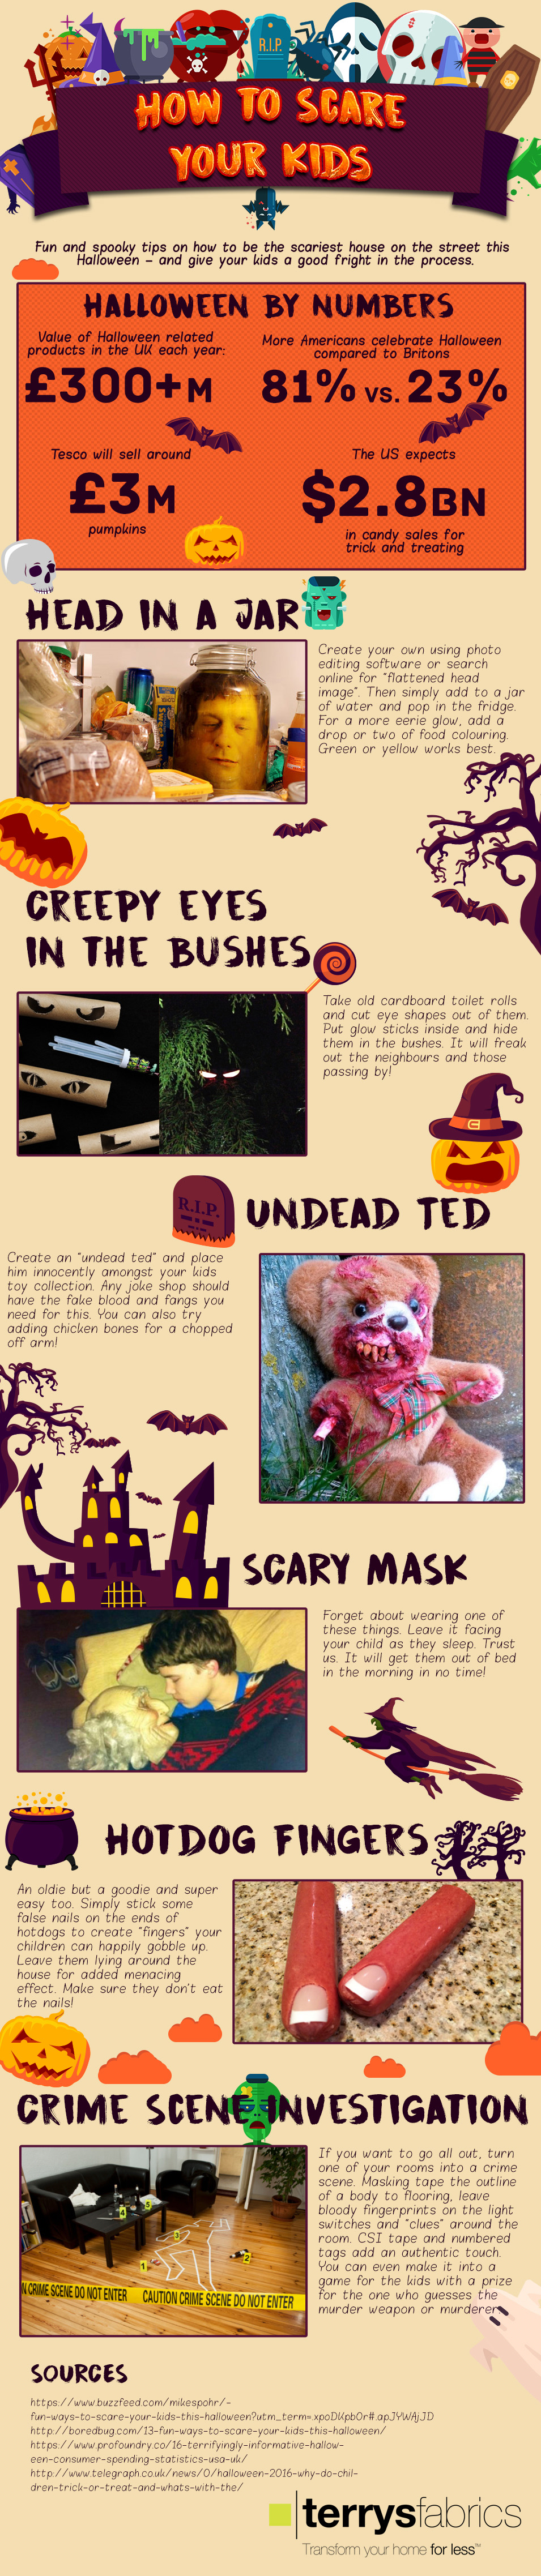 How To Scare Your Kids For Halloween [Infographic]